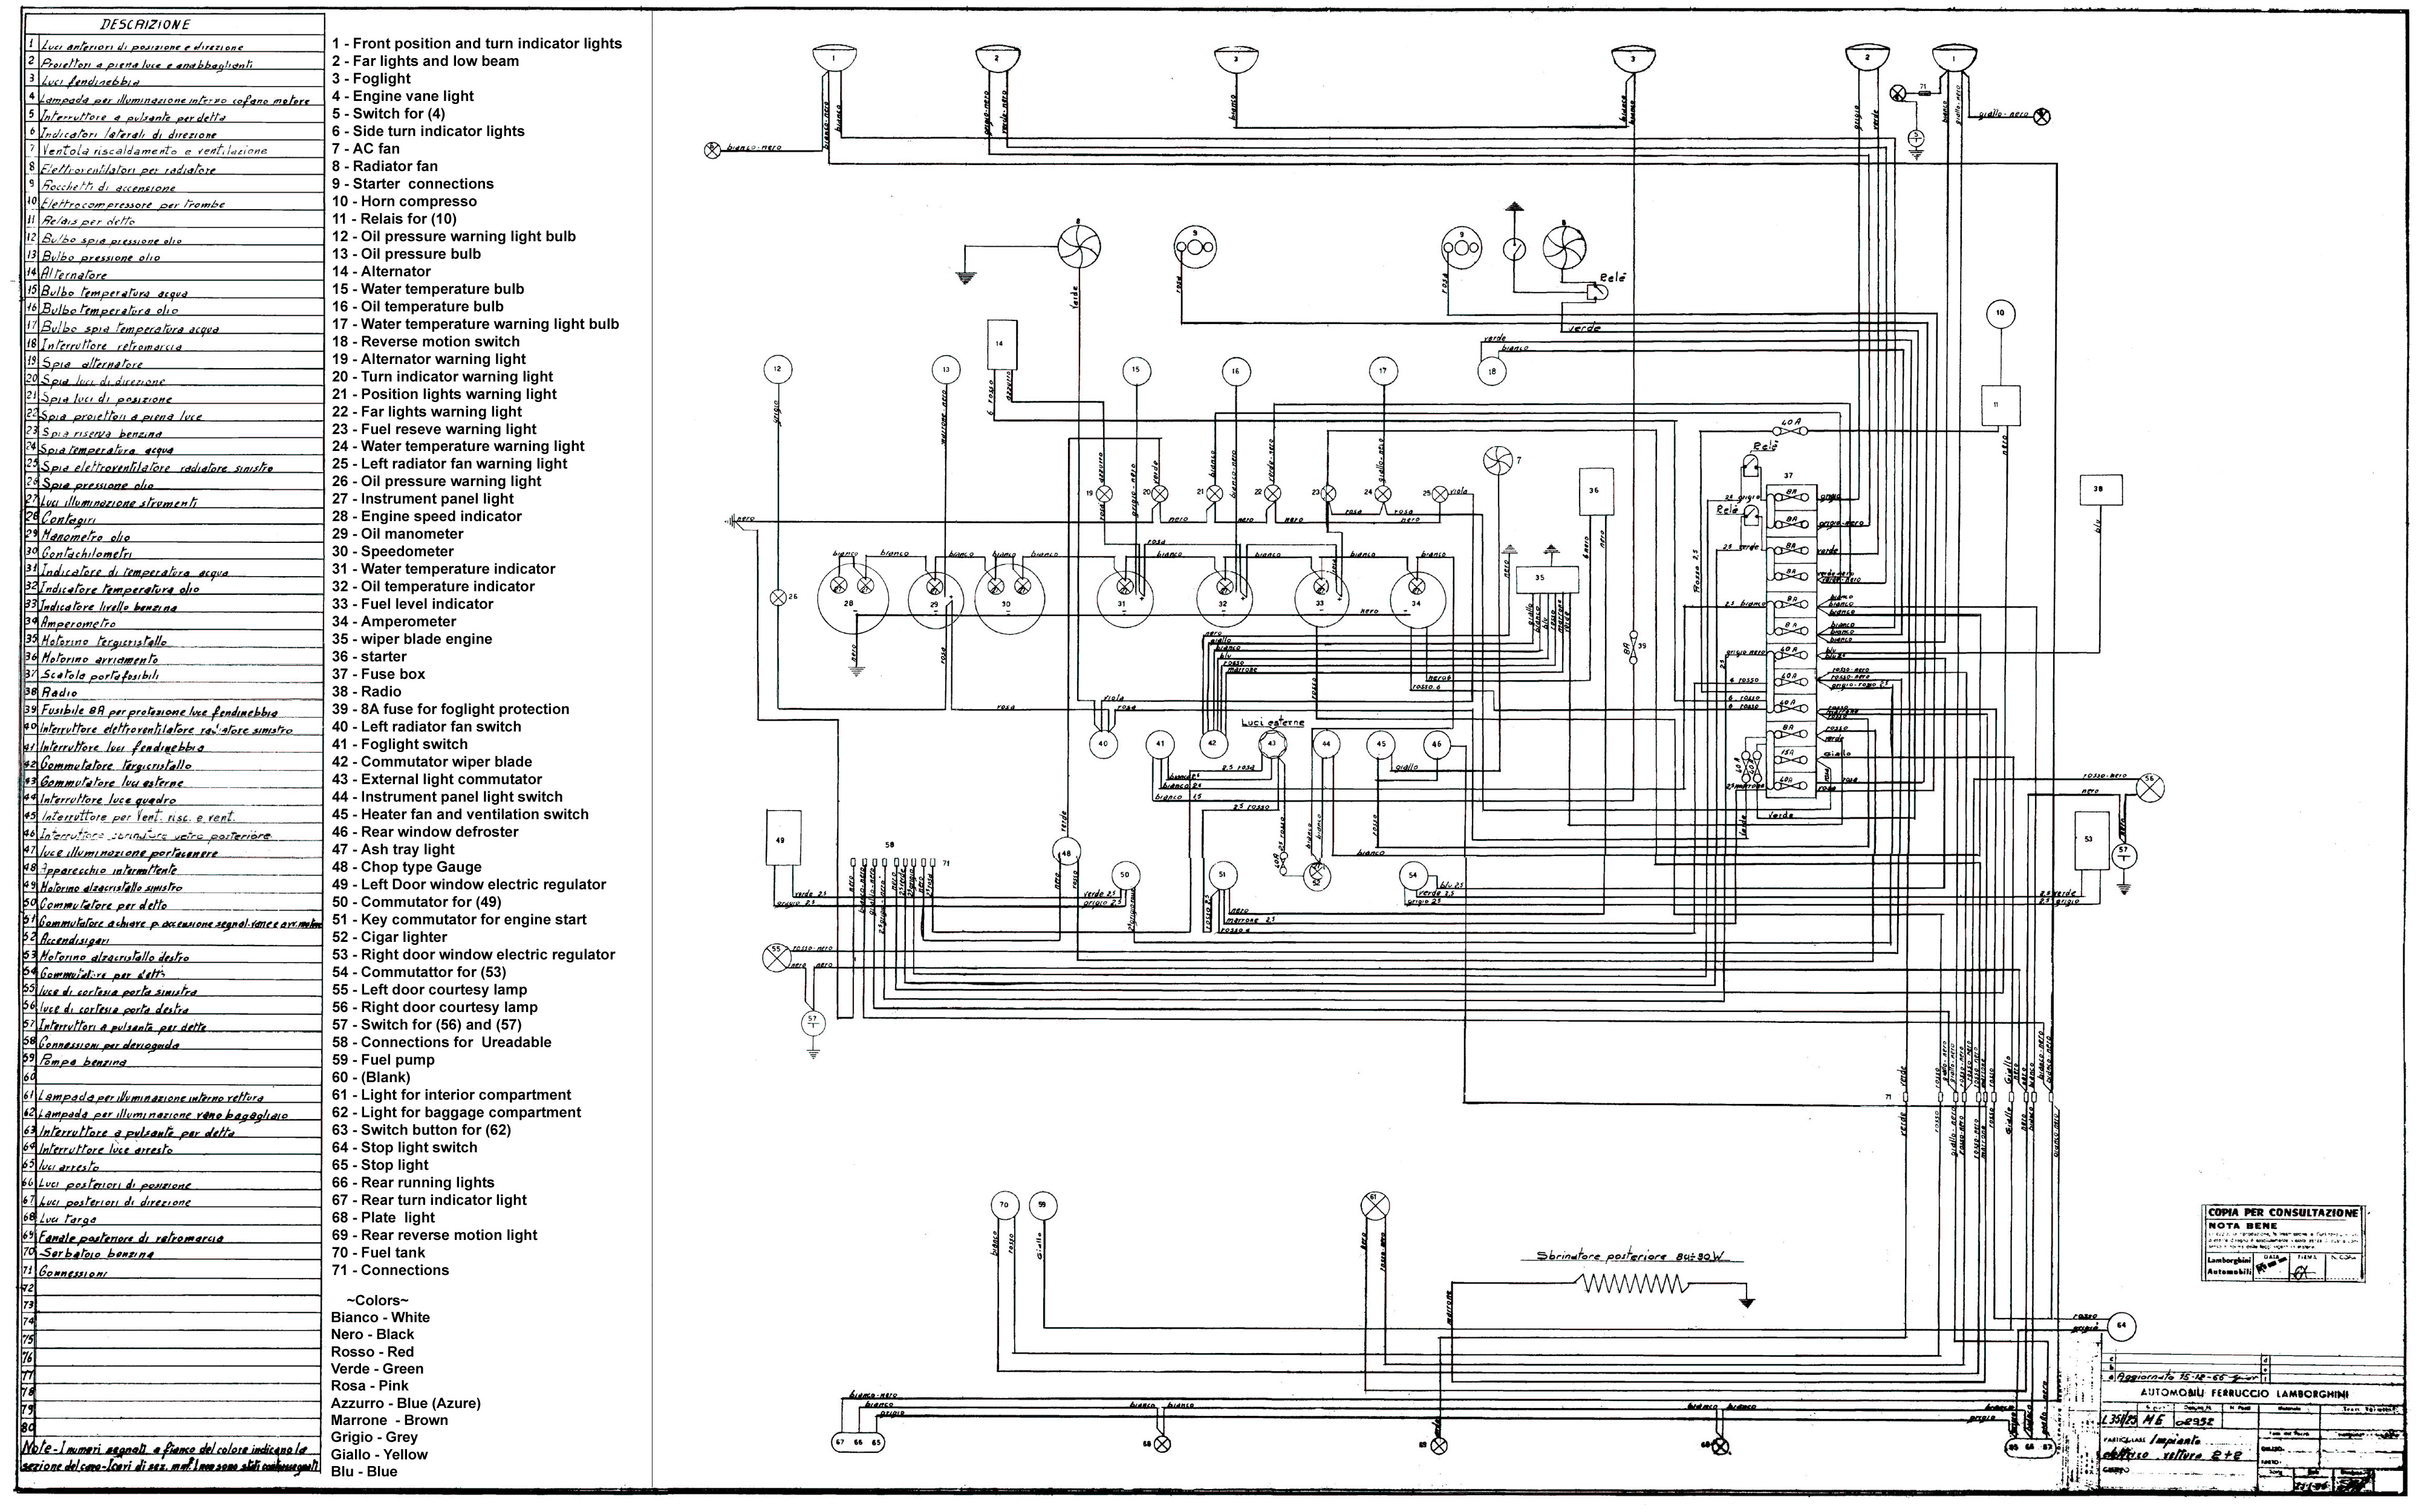 lamborghini diablo wiring diagrams with Lamborghini on Lamborghini likewise Lamborghini Gallardo Wiring Diagrams additionally Category Apparel Youth further Aftermarket Gallardo SpeakerBox moreover 1929 Model A Engine Diagram.